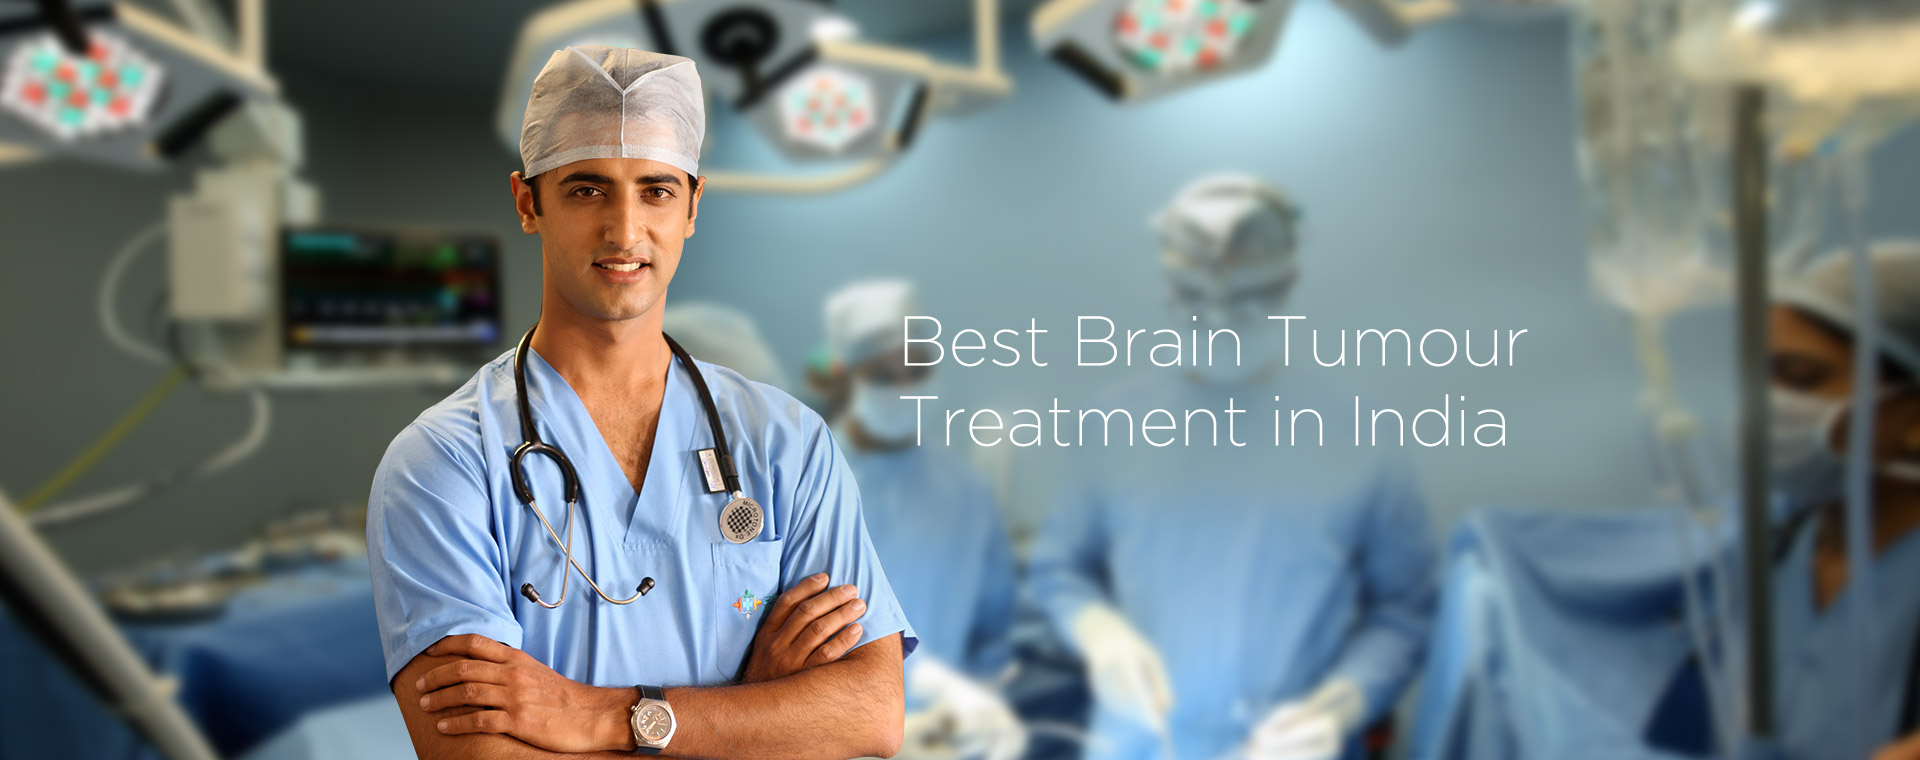 Best Brain Tumor Treatment in India